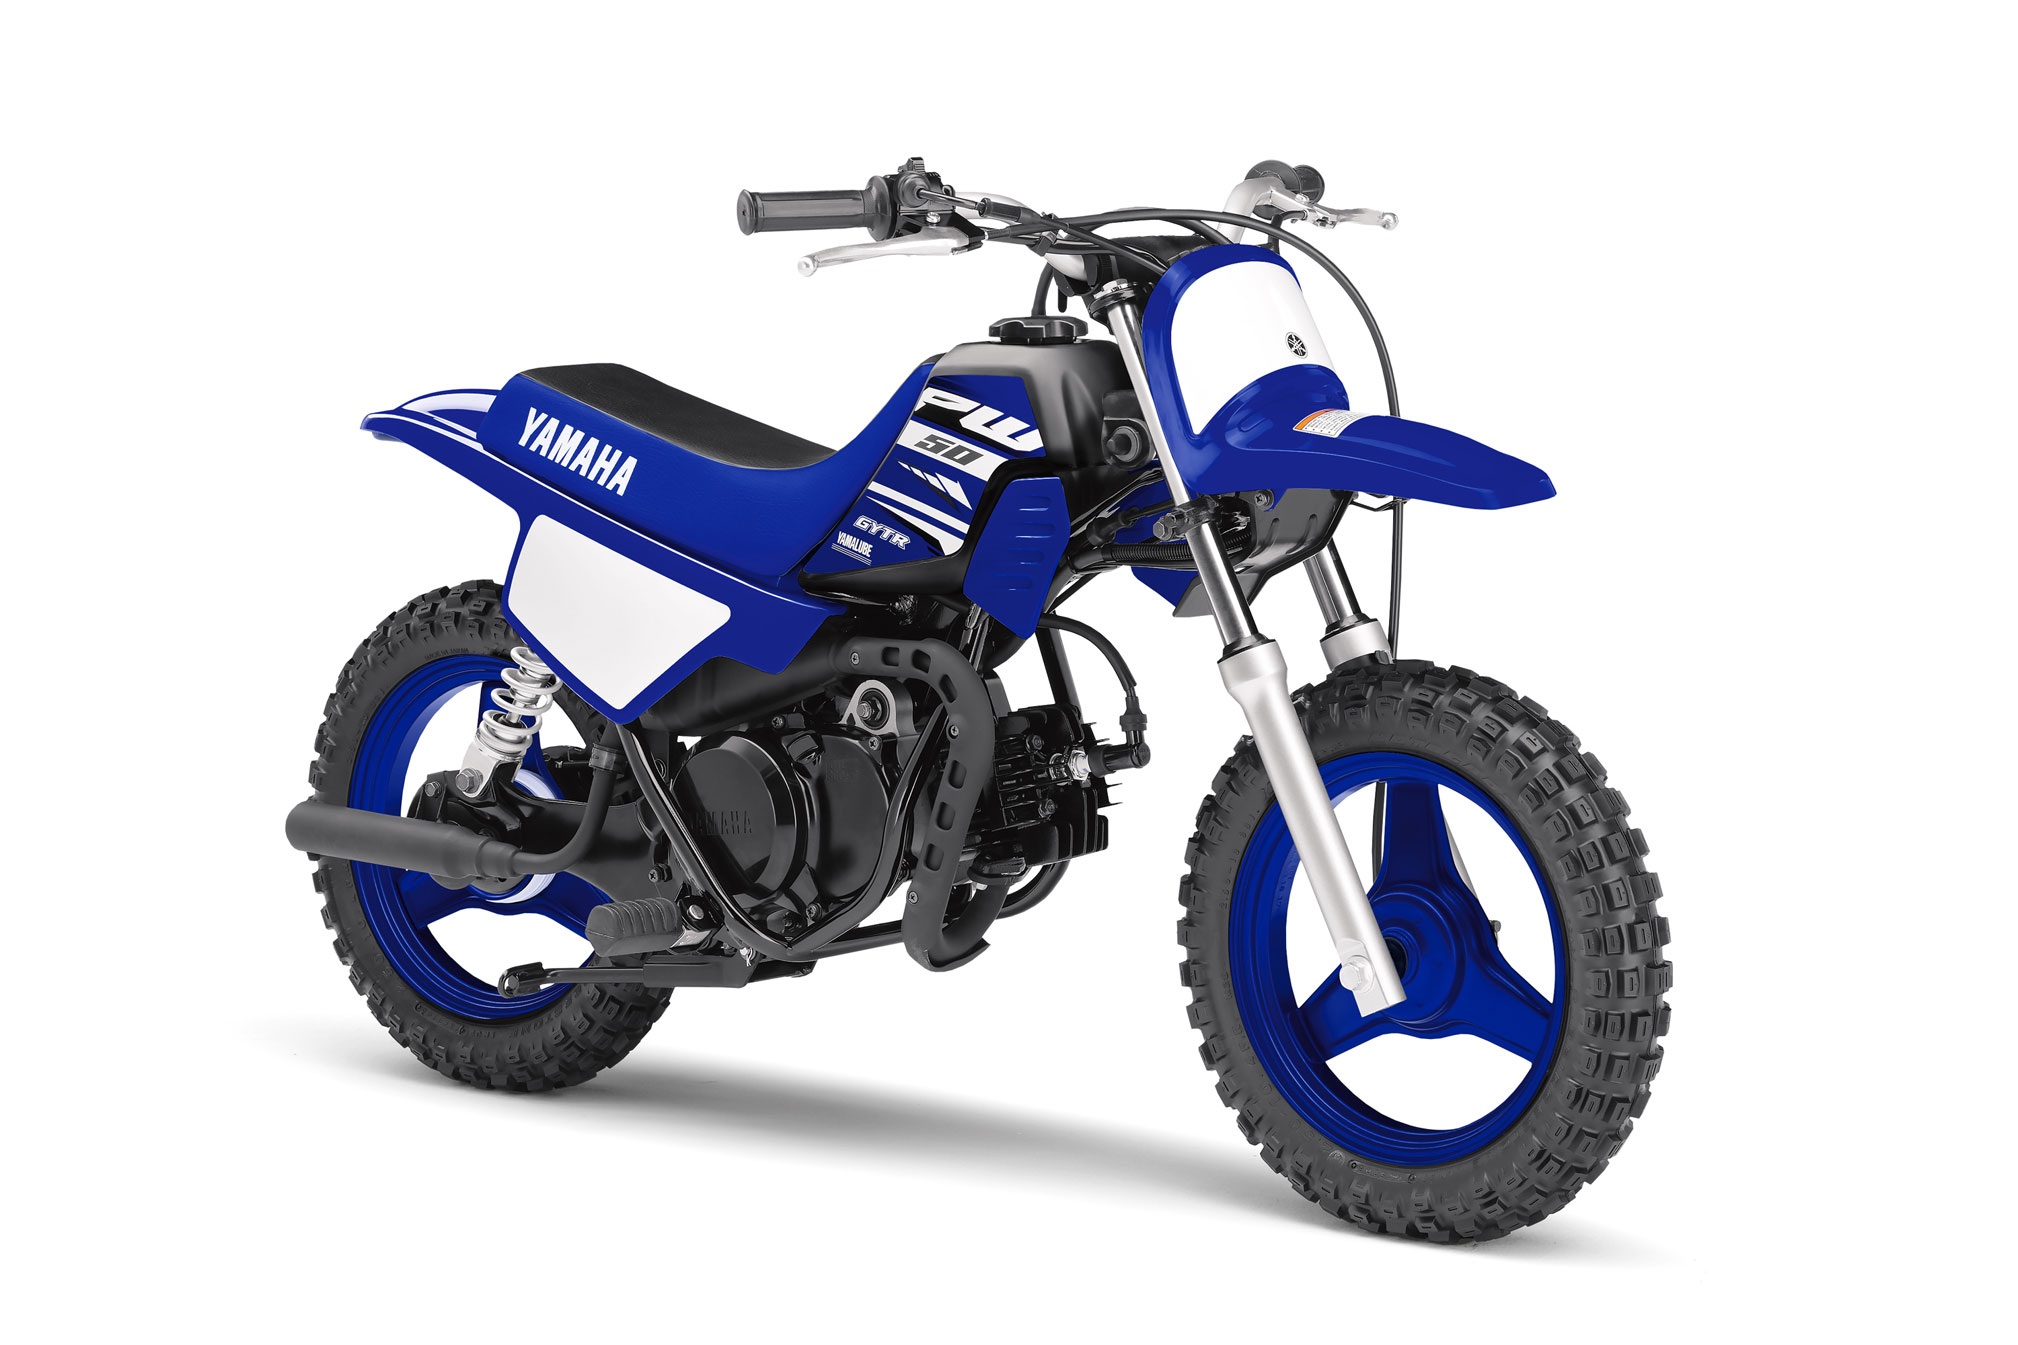 2018 Yamaha PW50 Review • TotalMotorcycle